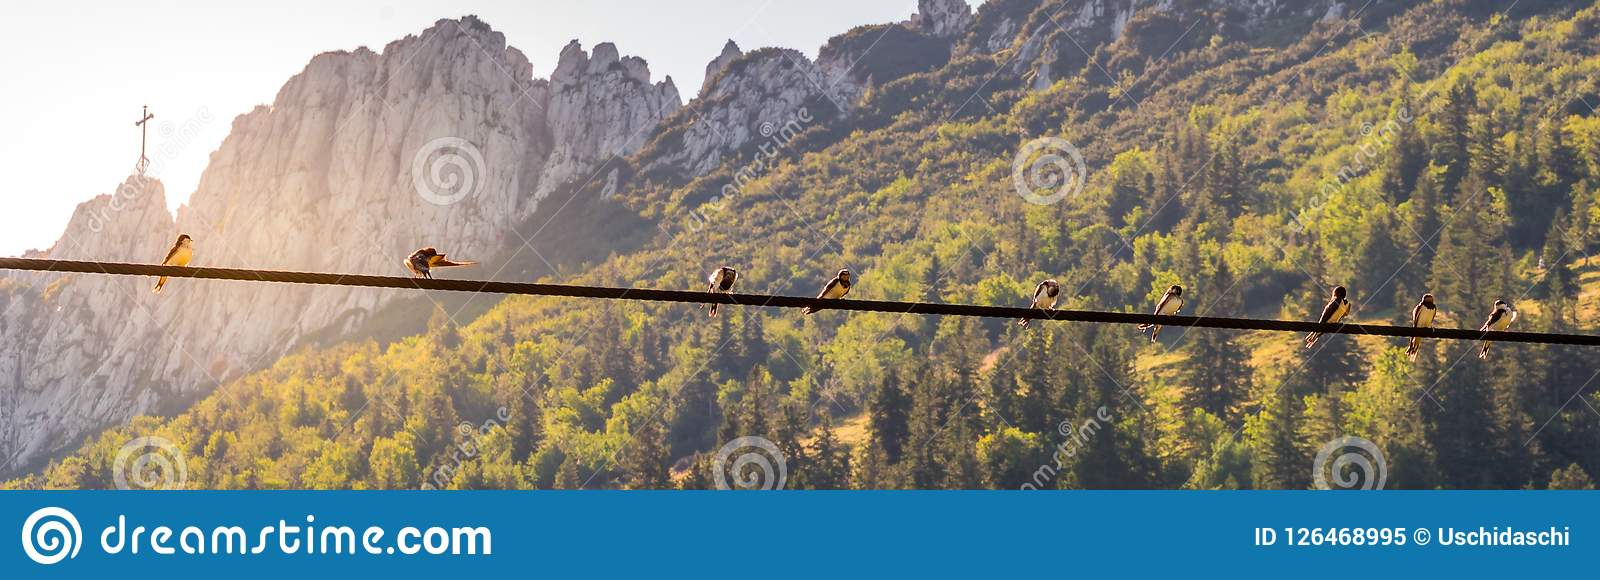 Image of birds sitting on a power line with sunset and mountainlandscape in the background